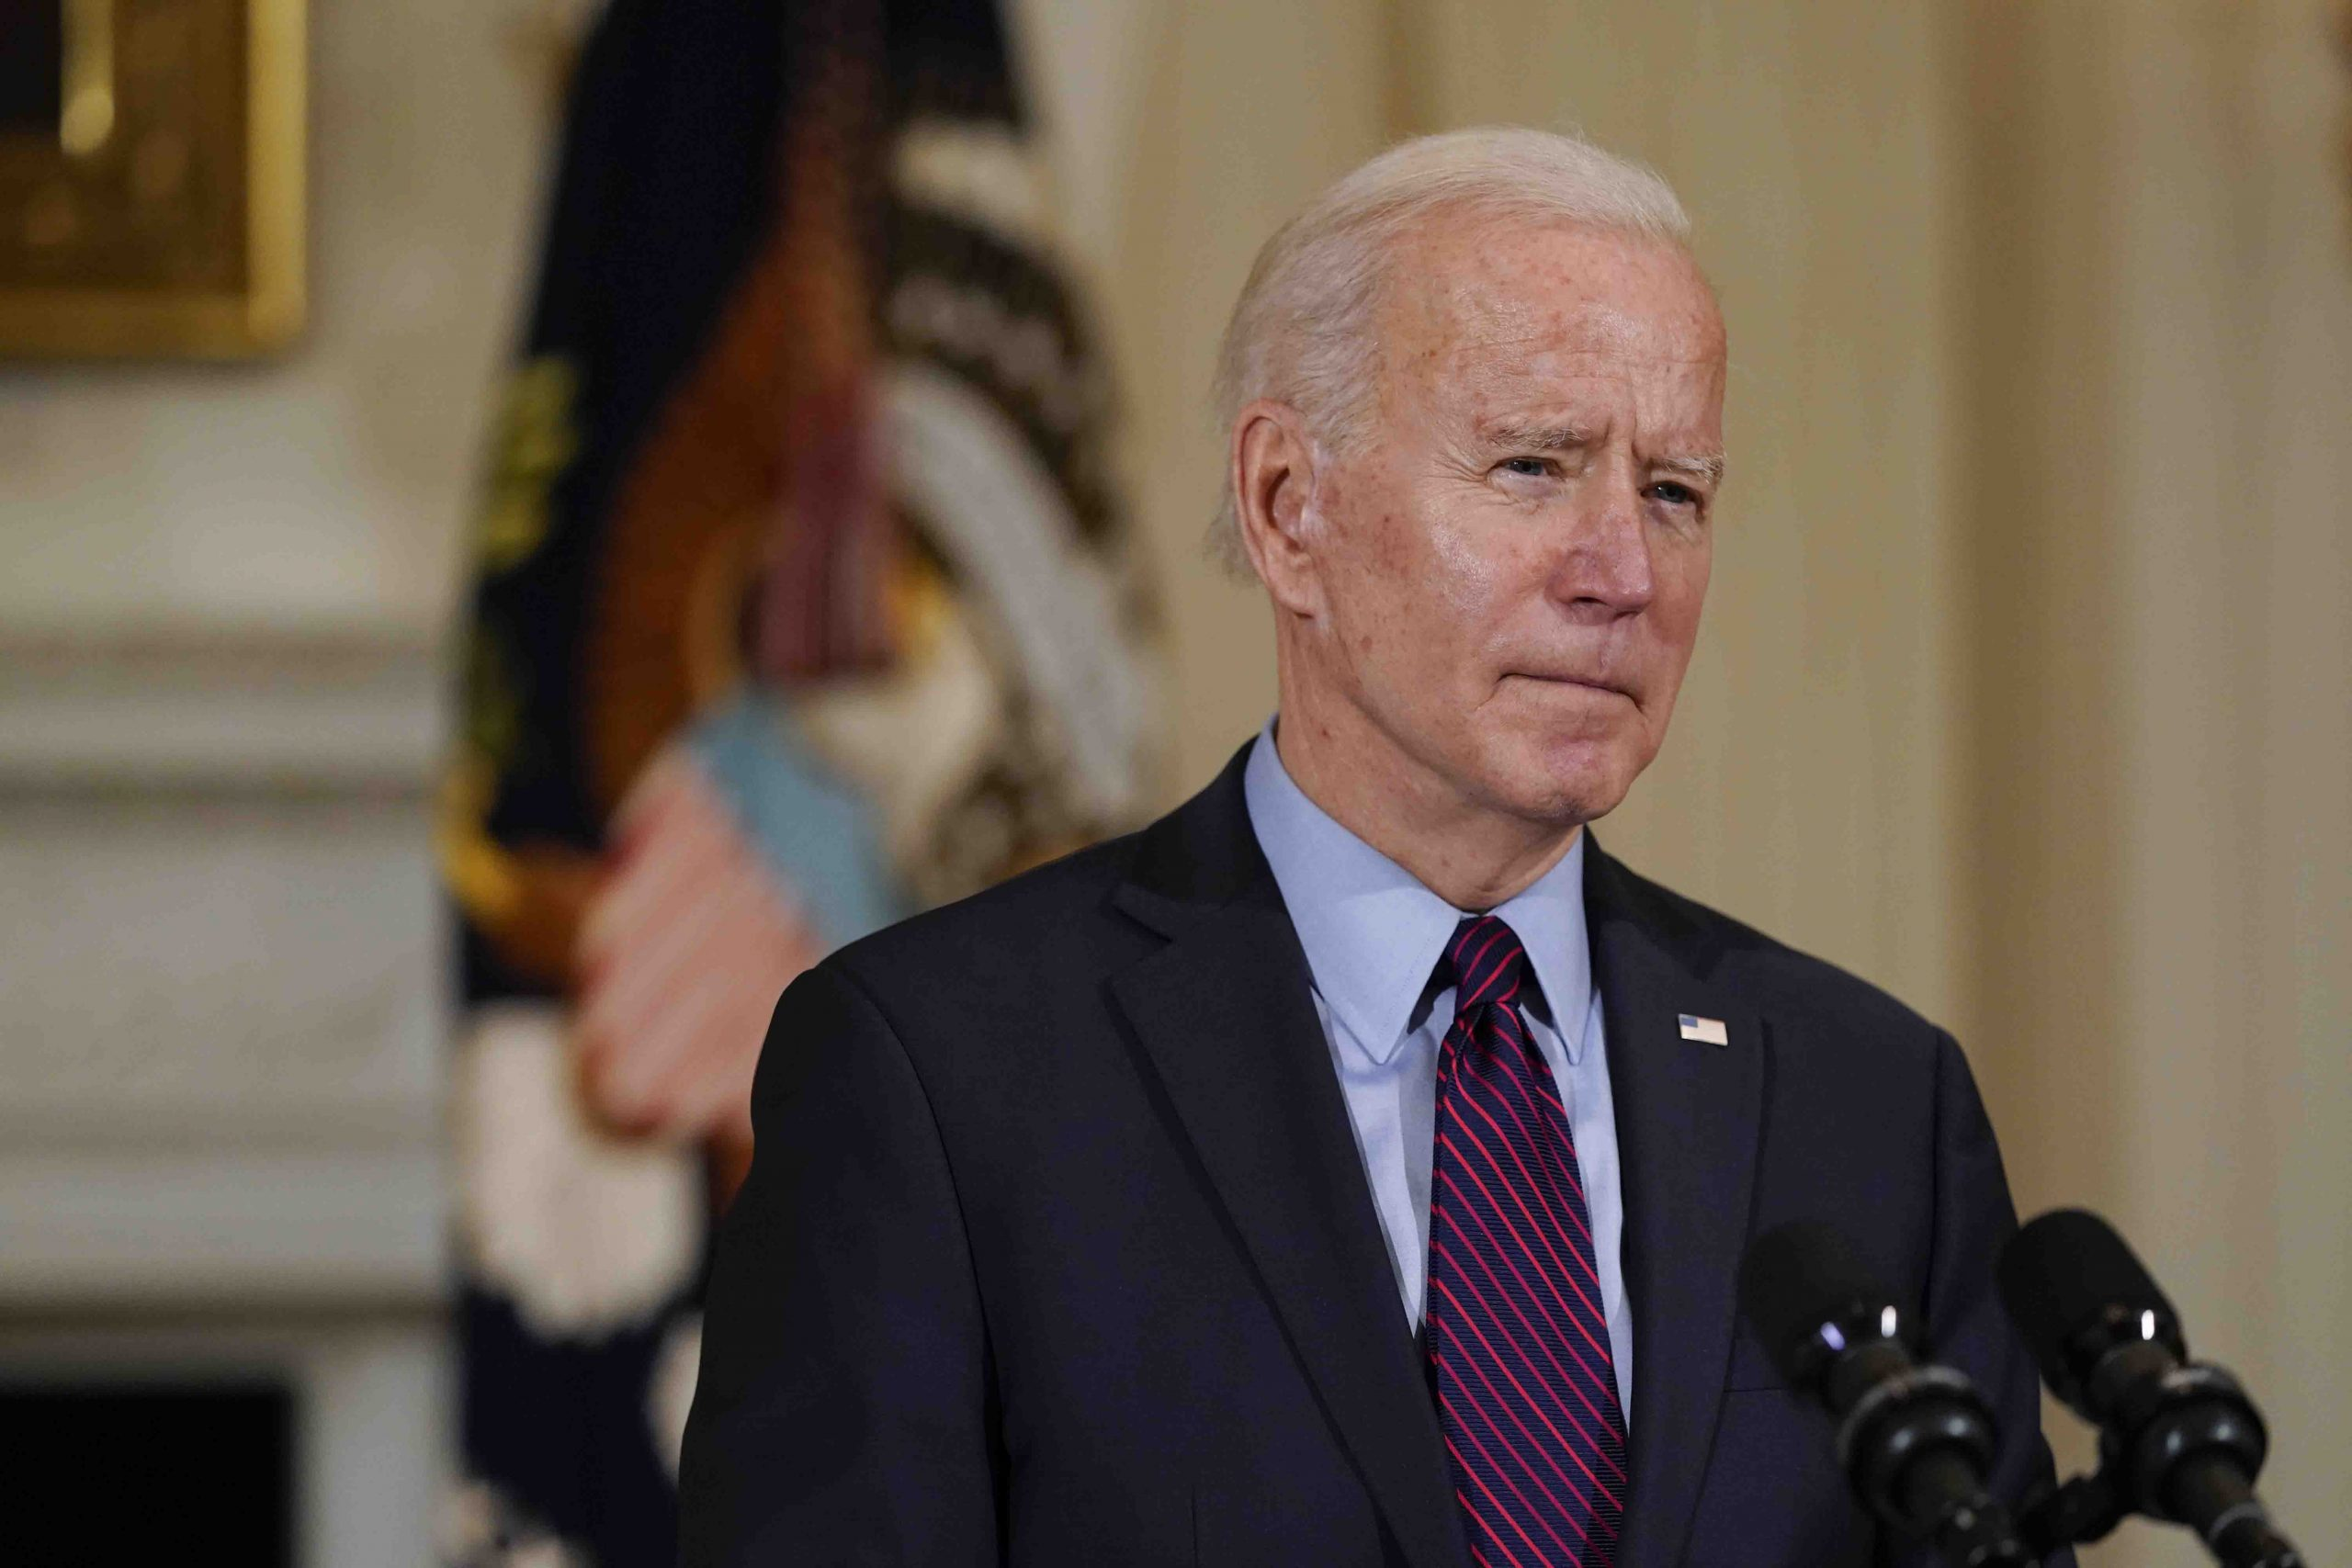 Biden to use Defense Production Act to increase supply of Covid-19 vaccines and tests